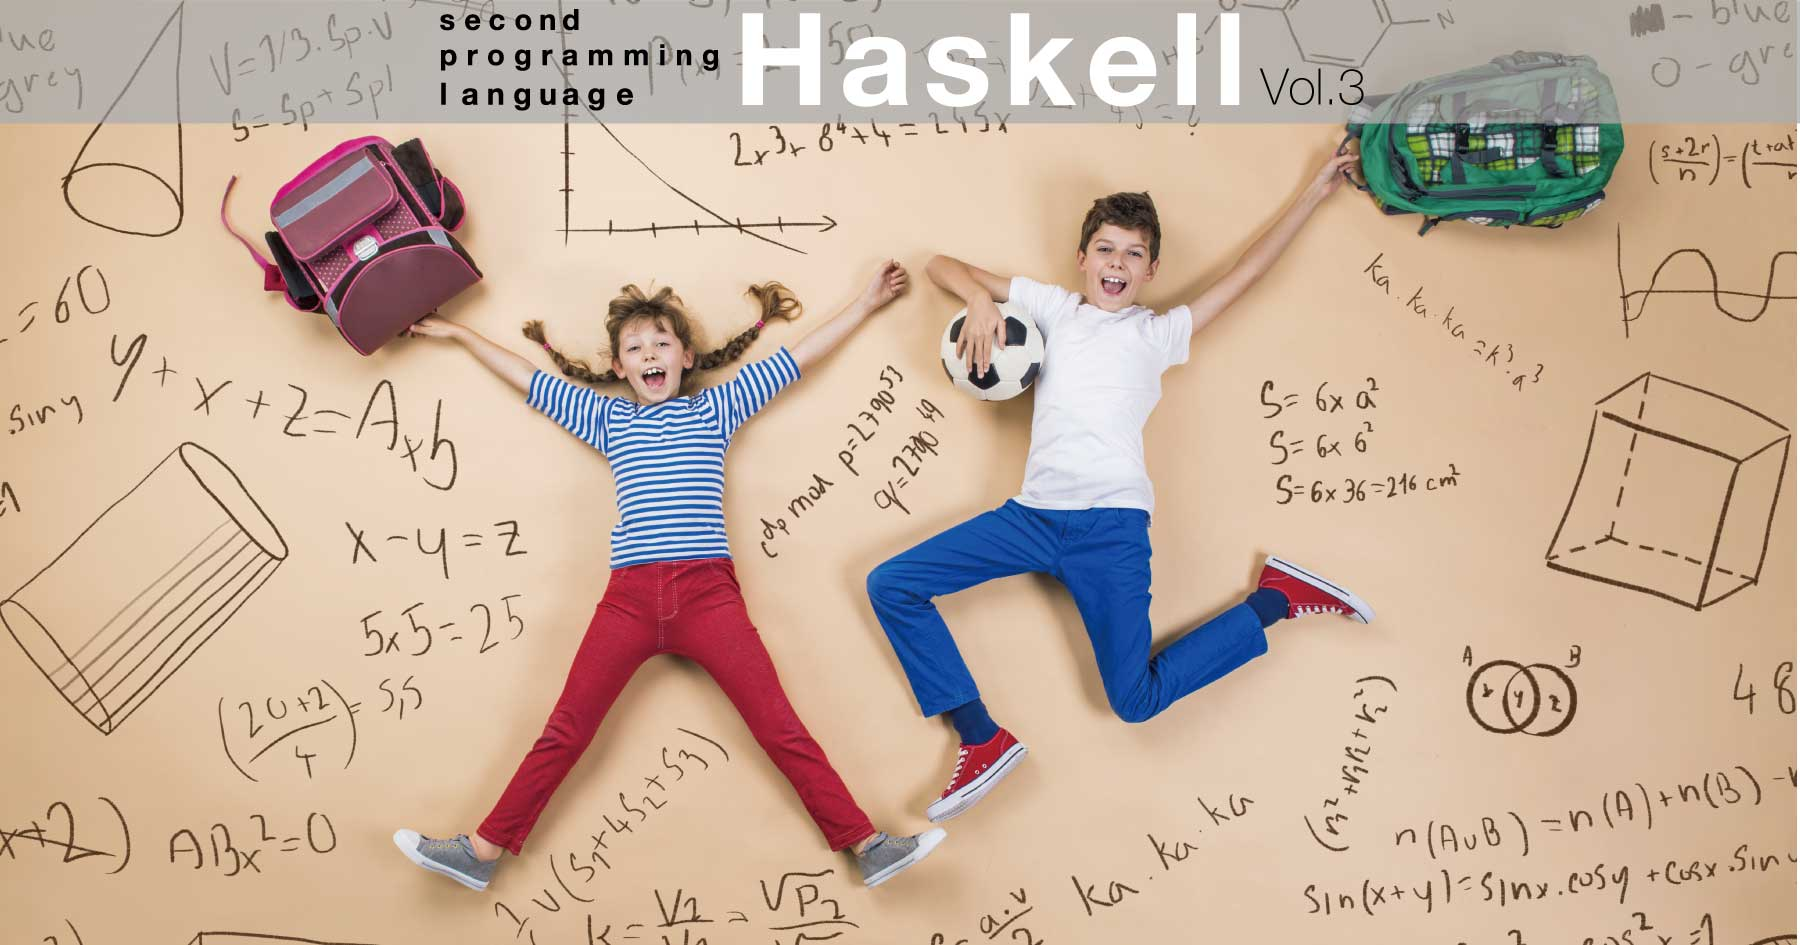 second programming language Haskell vol. 3